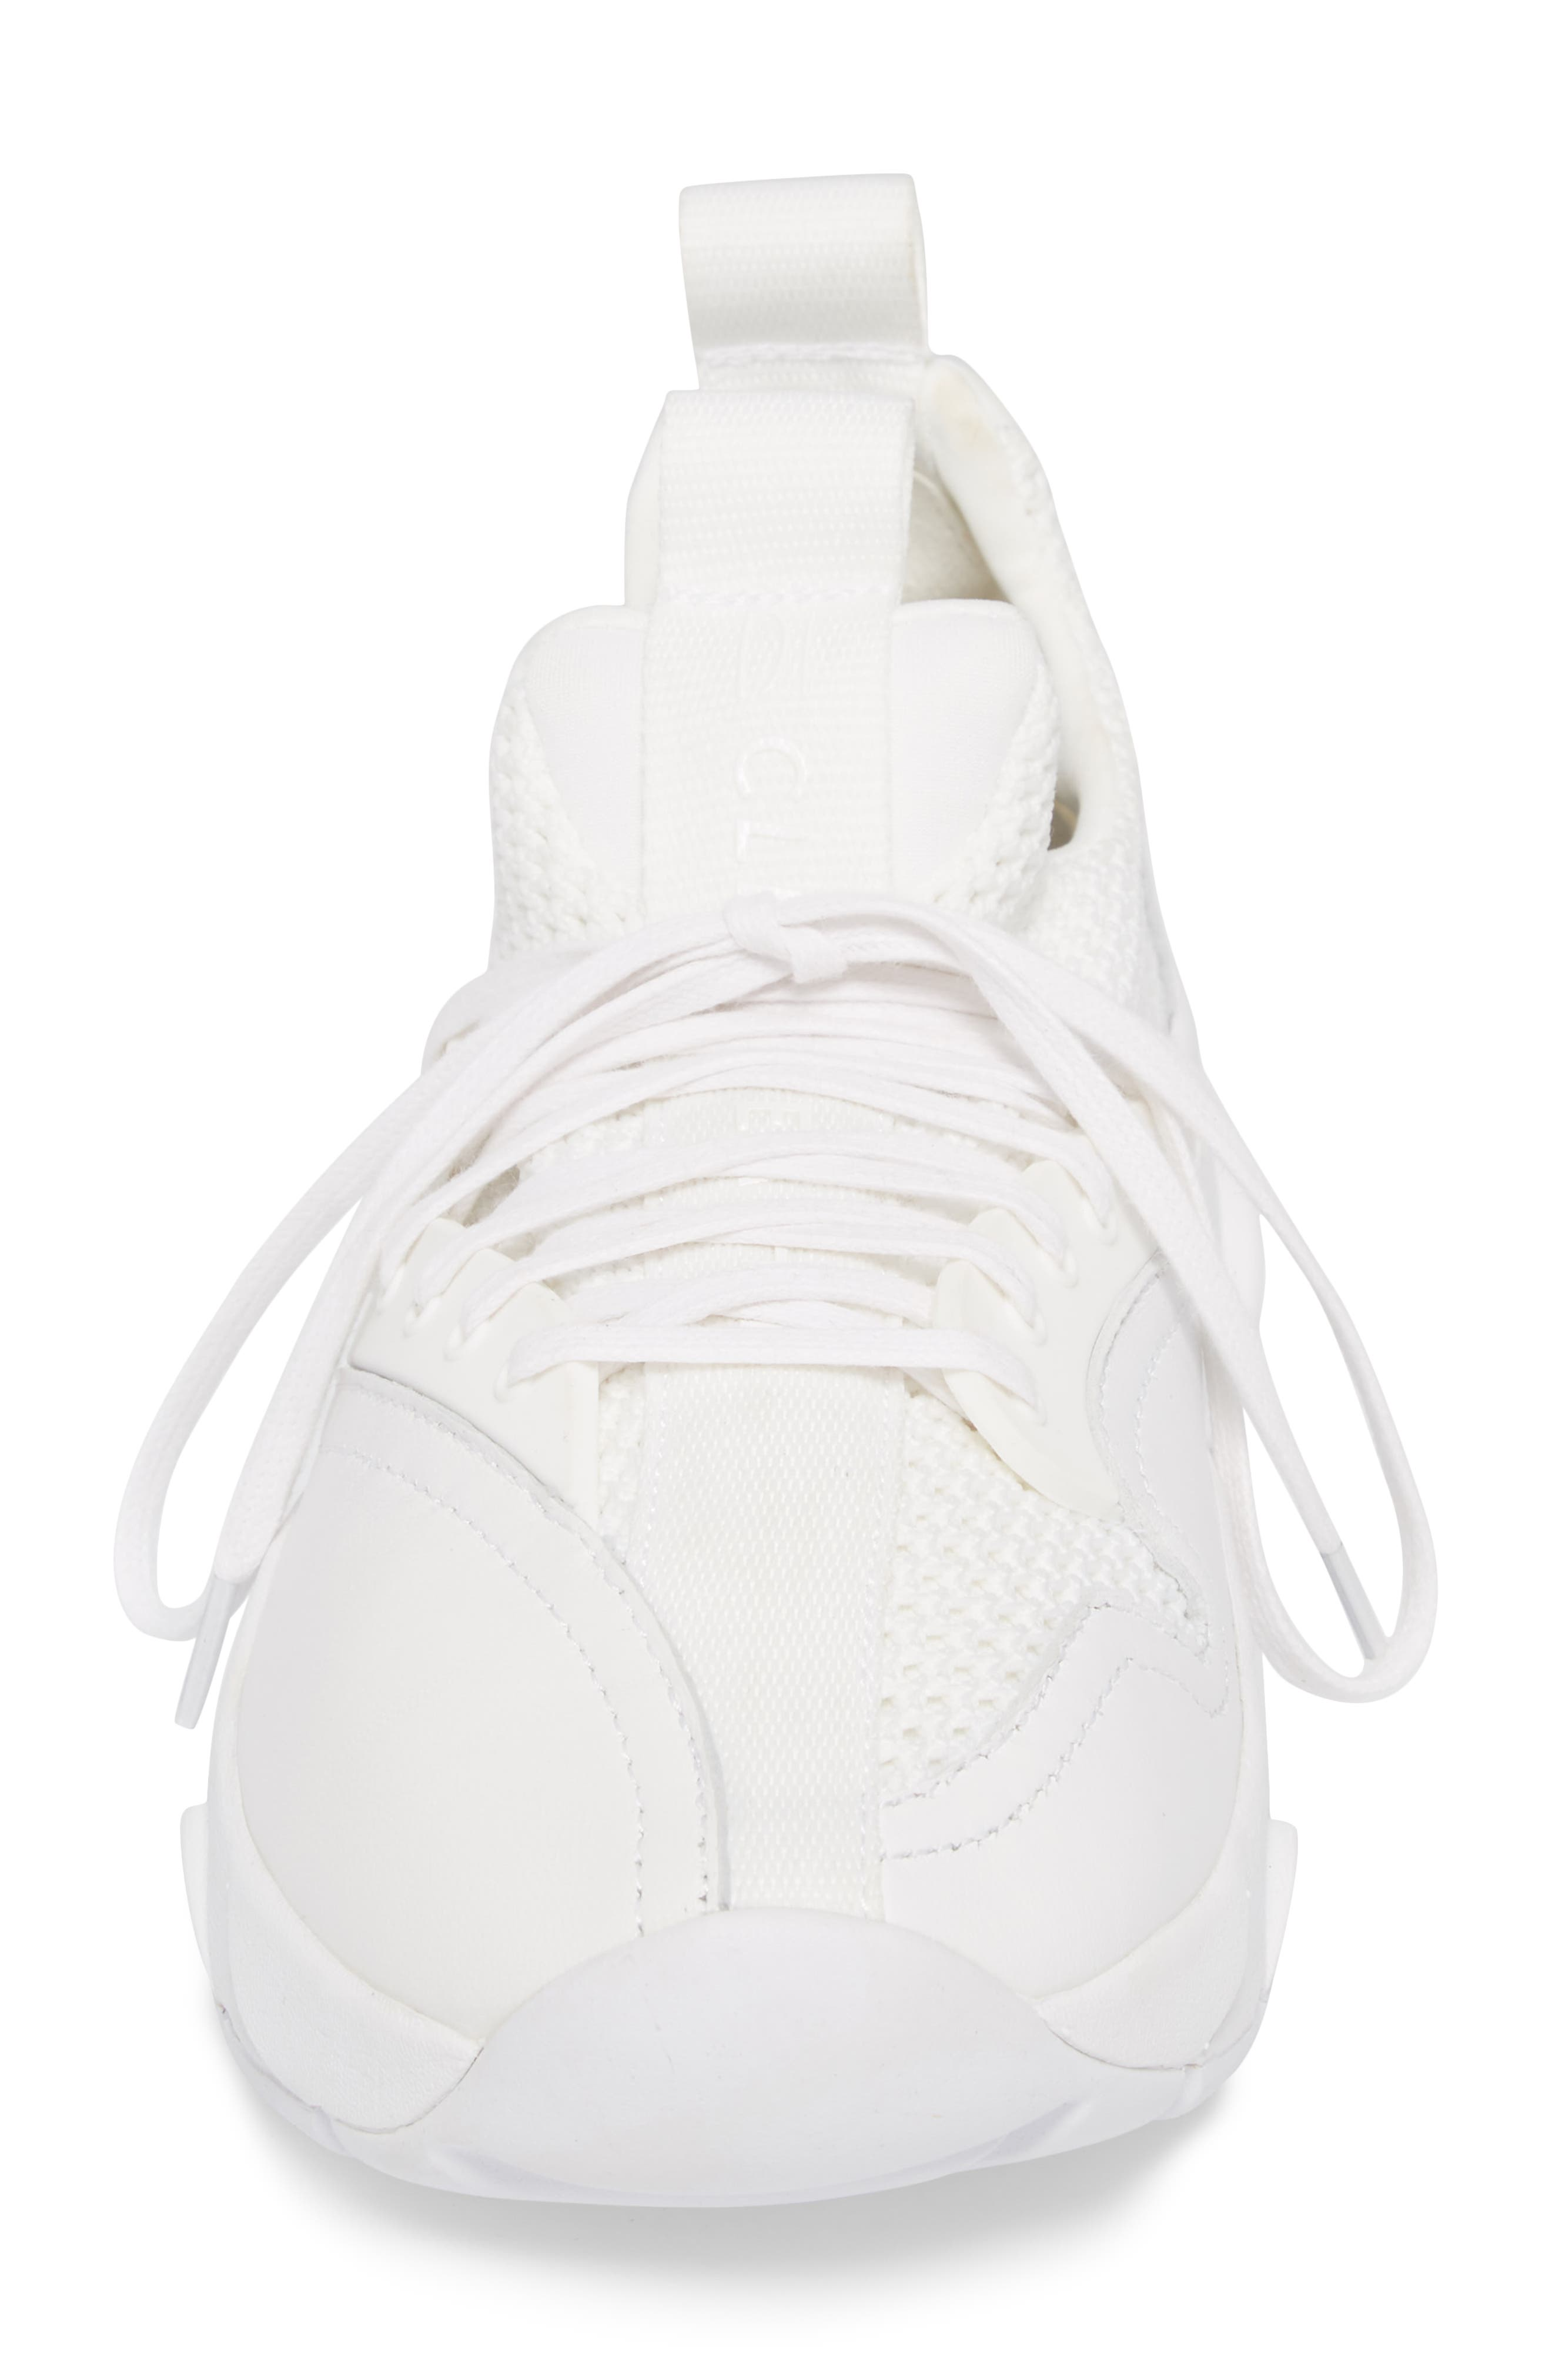 Clear Weather The Cloud Stryke Sneaker,                             Alternate thumbnail 4, color,                             White Hawk